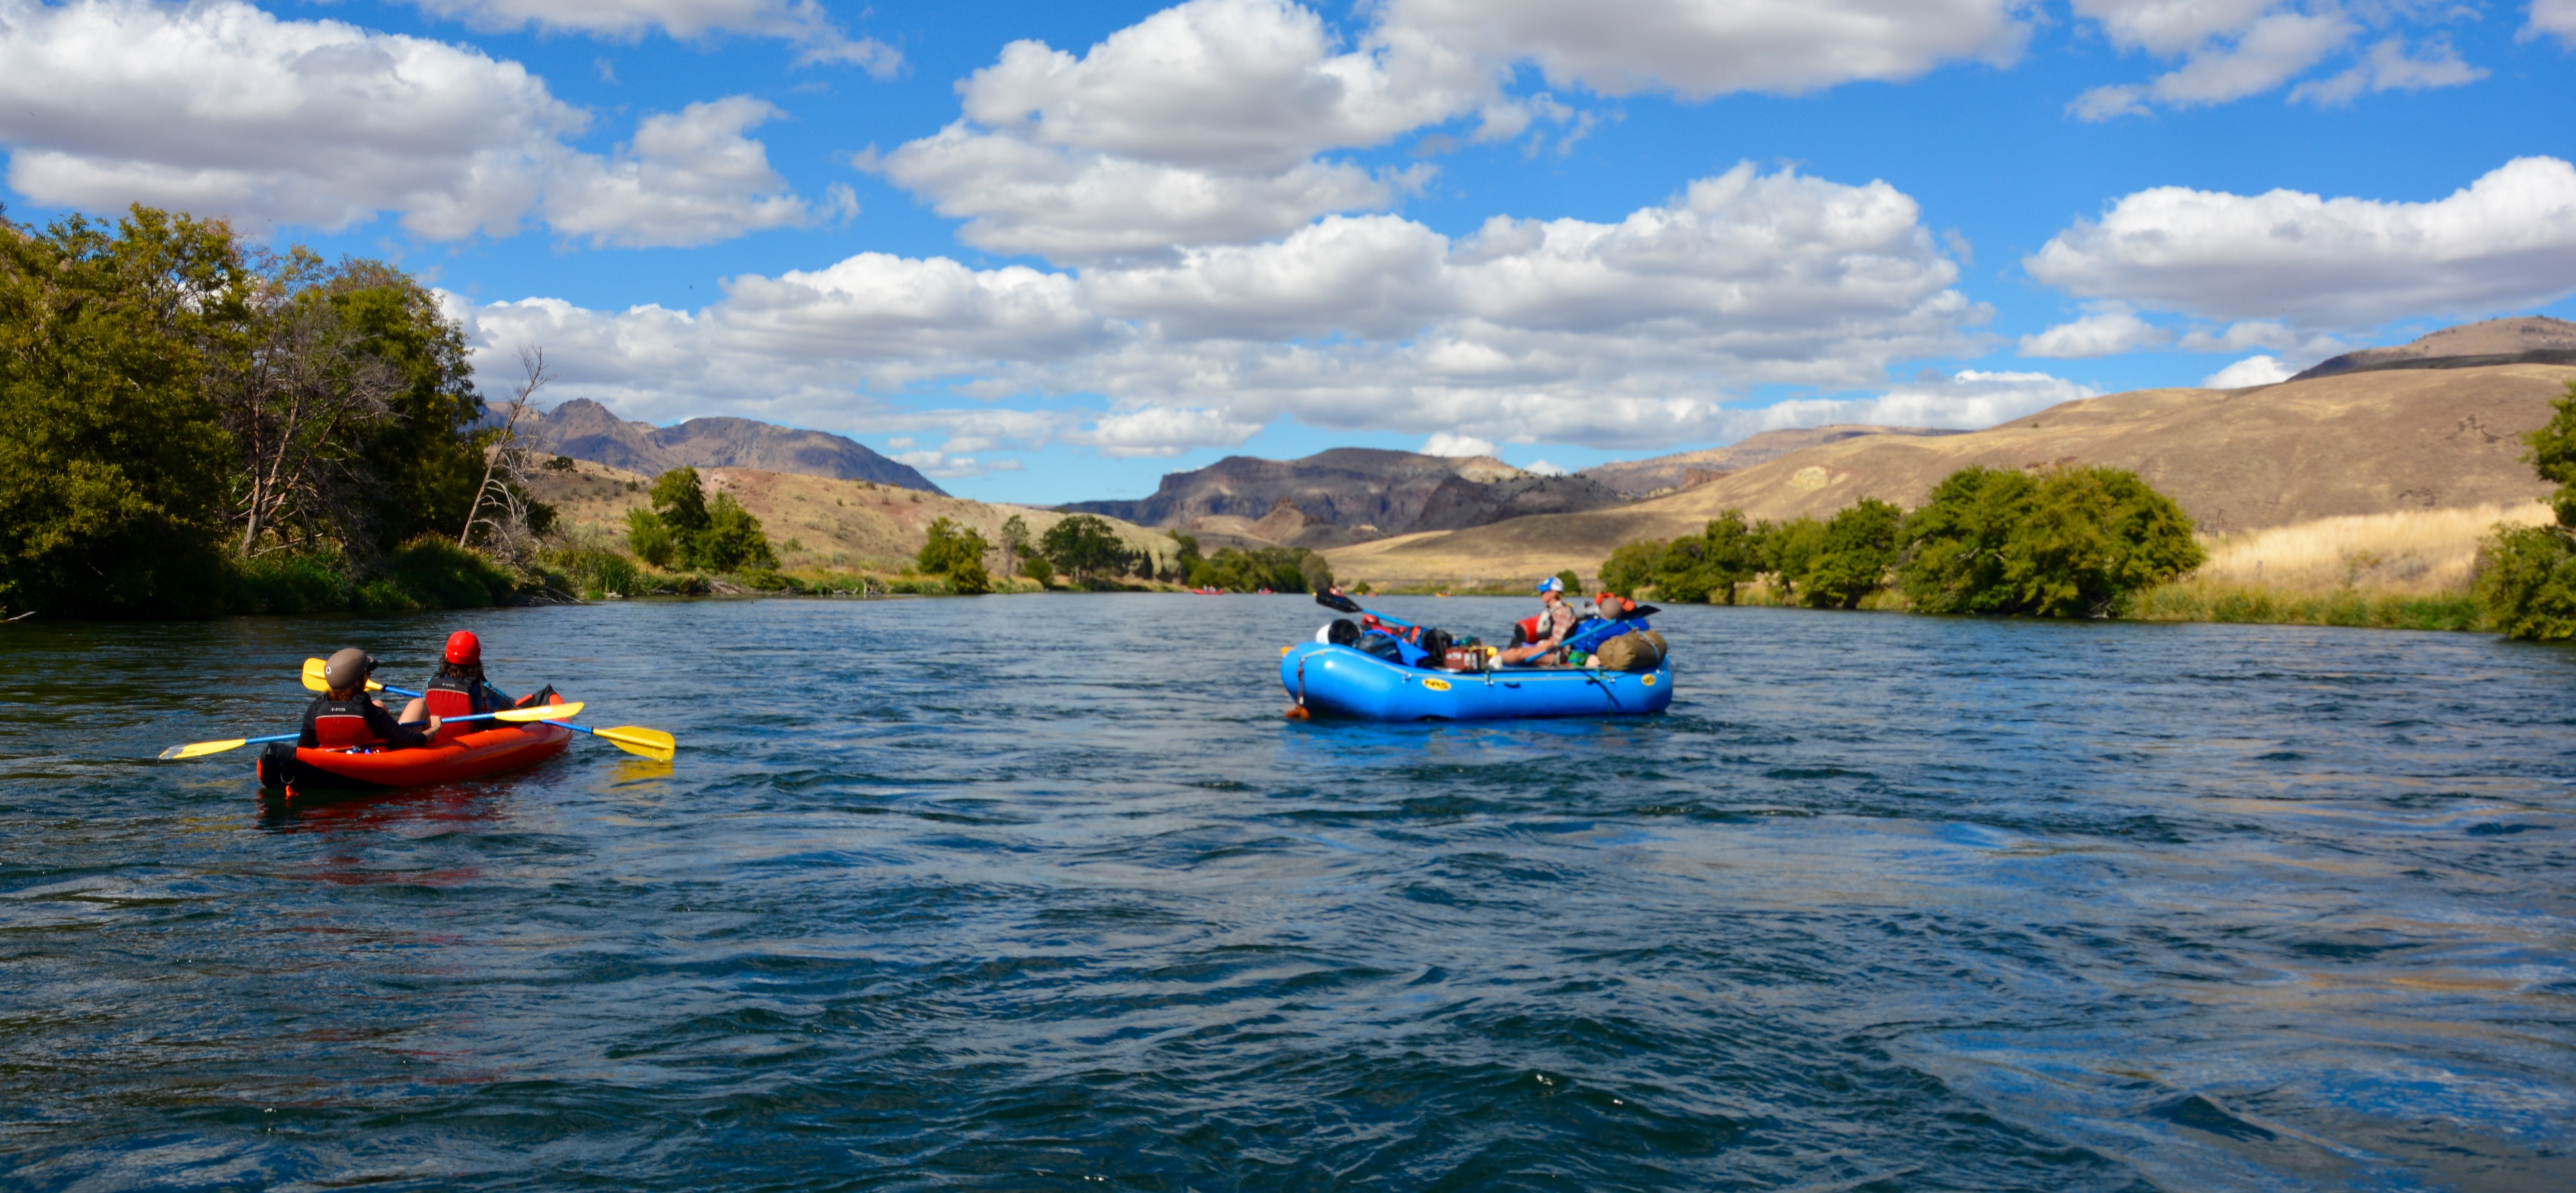 Rafting on the Deschutes River, OR